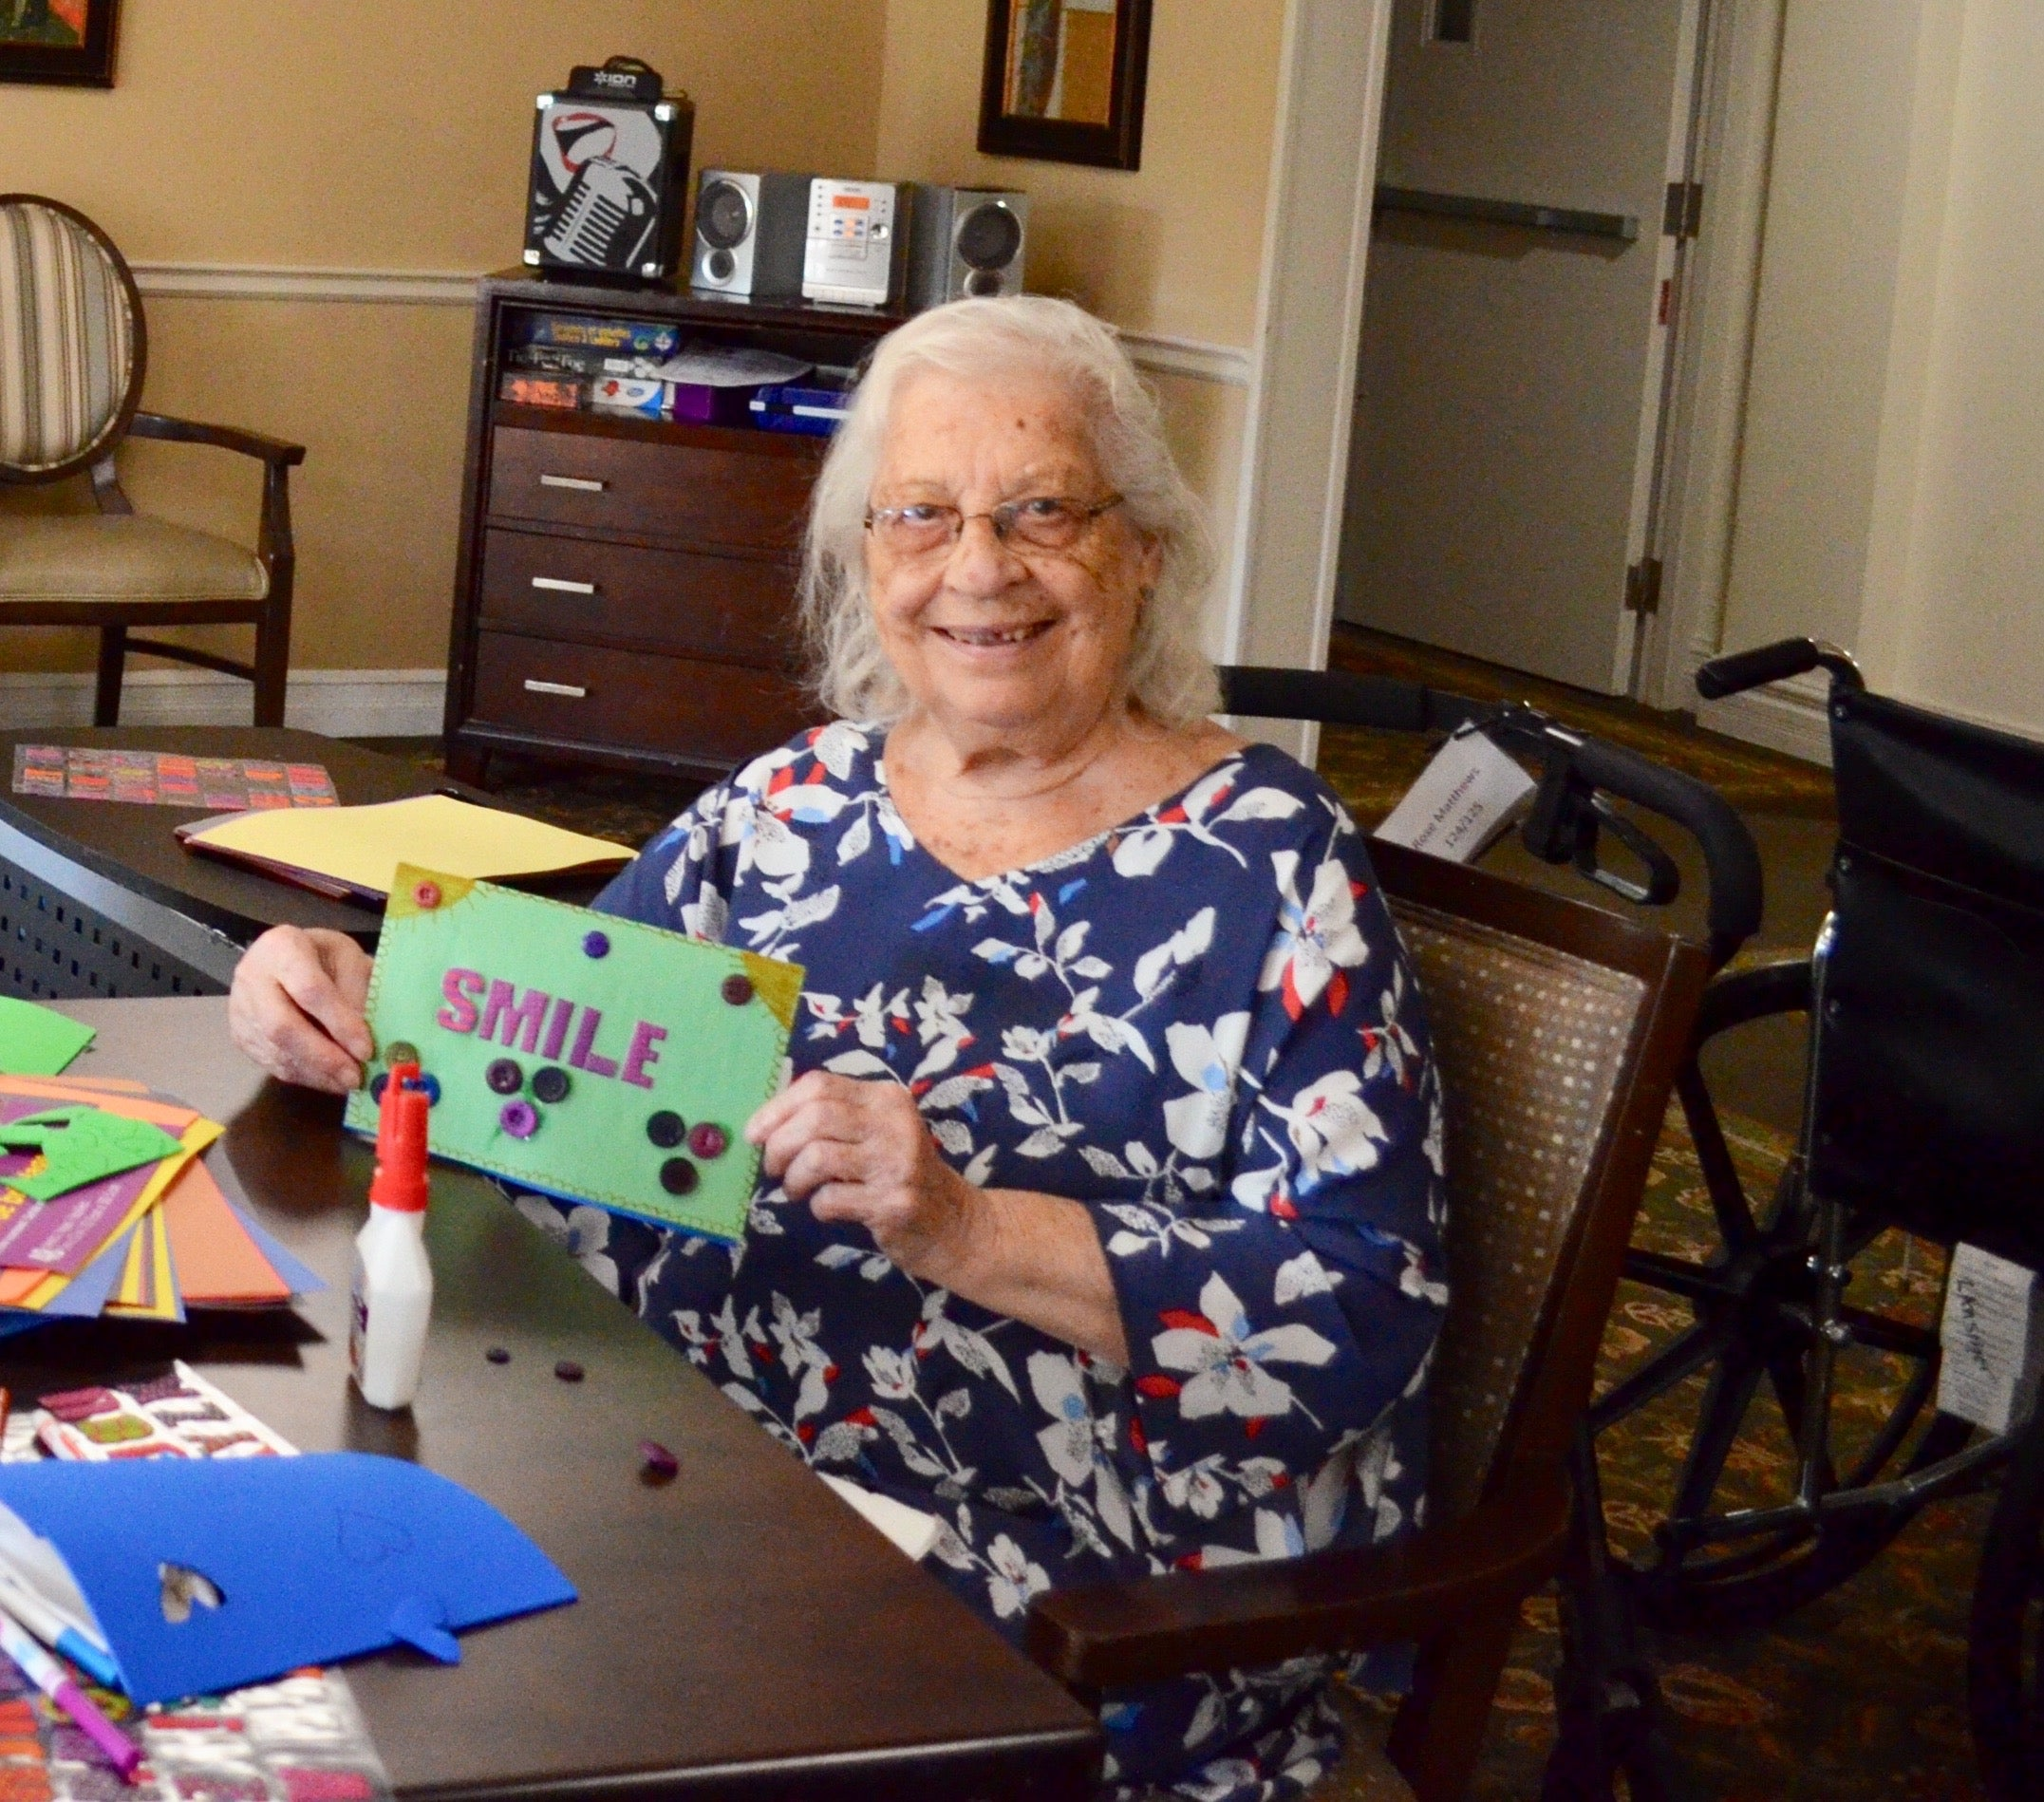 One of the seniors making cards for hospital patients at Lansing Retirement | Why I Partnered with Seniors With Skills | Thoughtfully Handmade